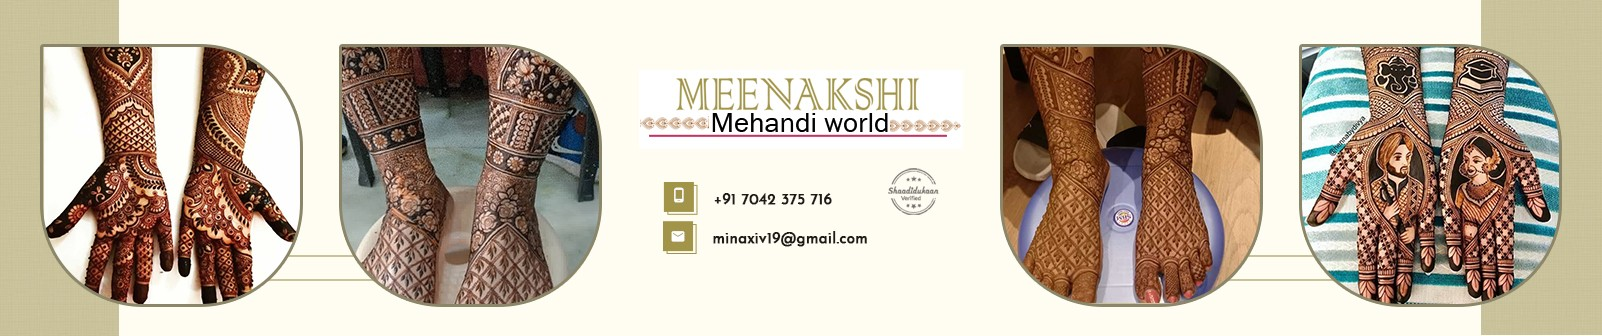 meenakshi-mehandi-world